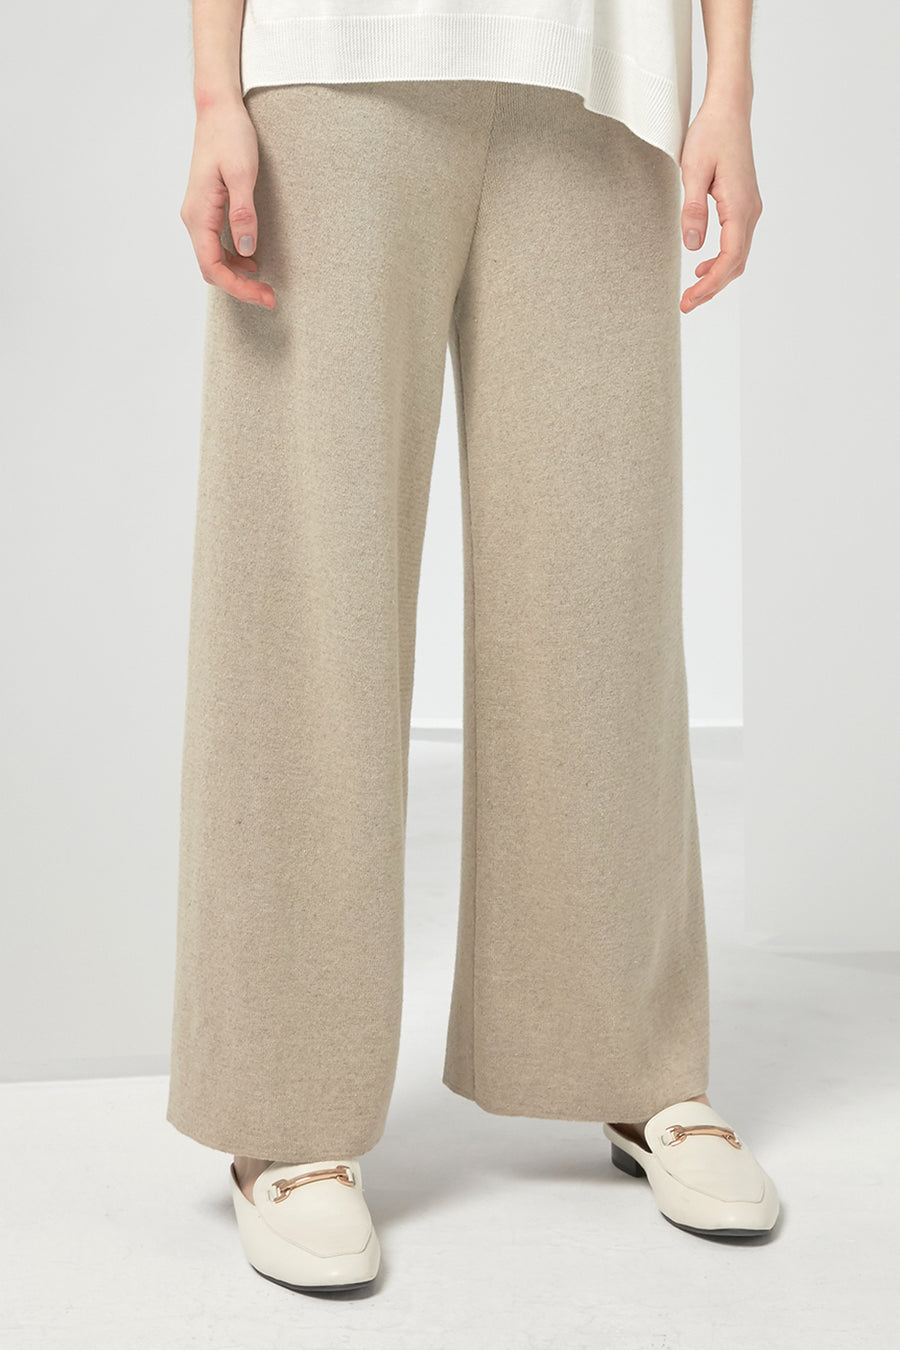 Linen-blend knitted trousers - Zelle Studio